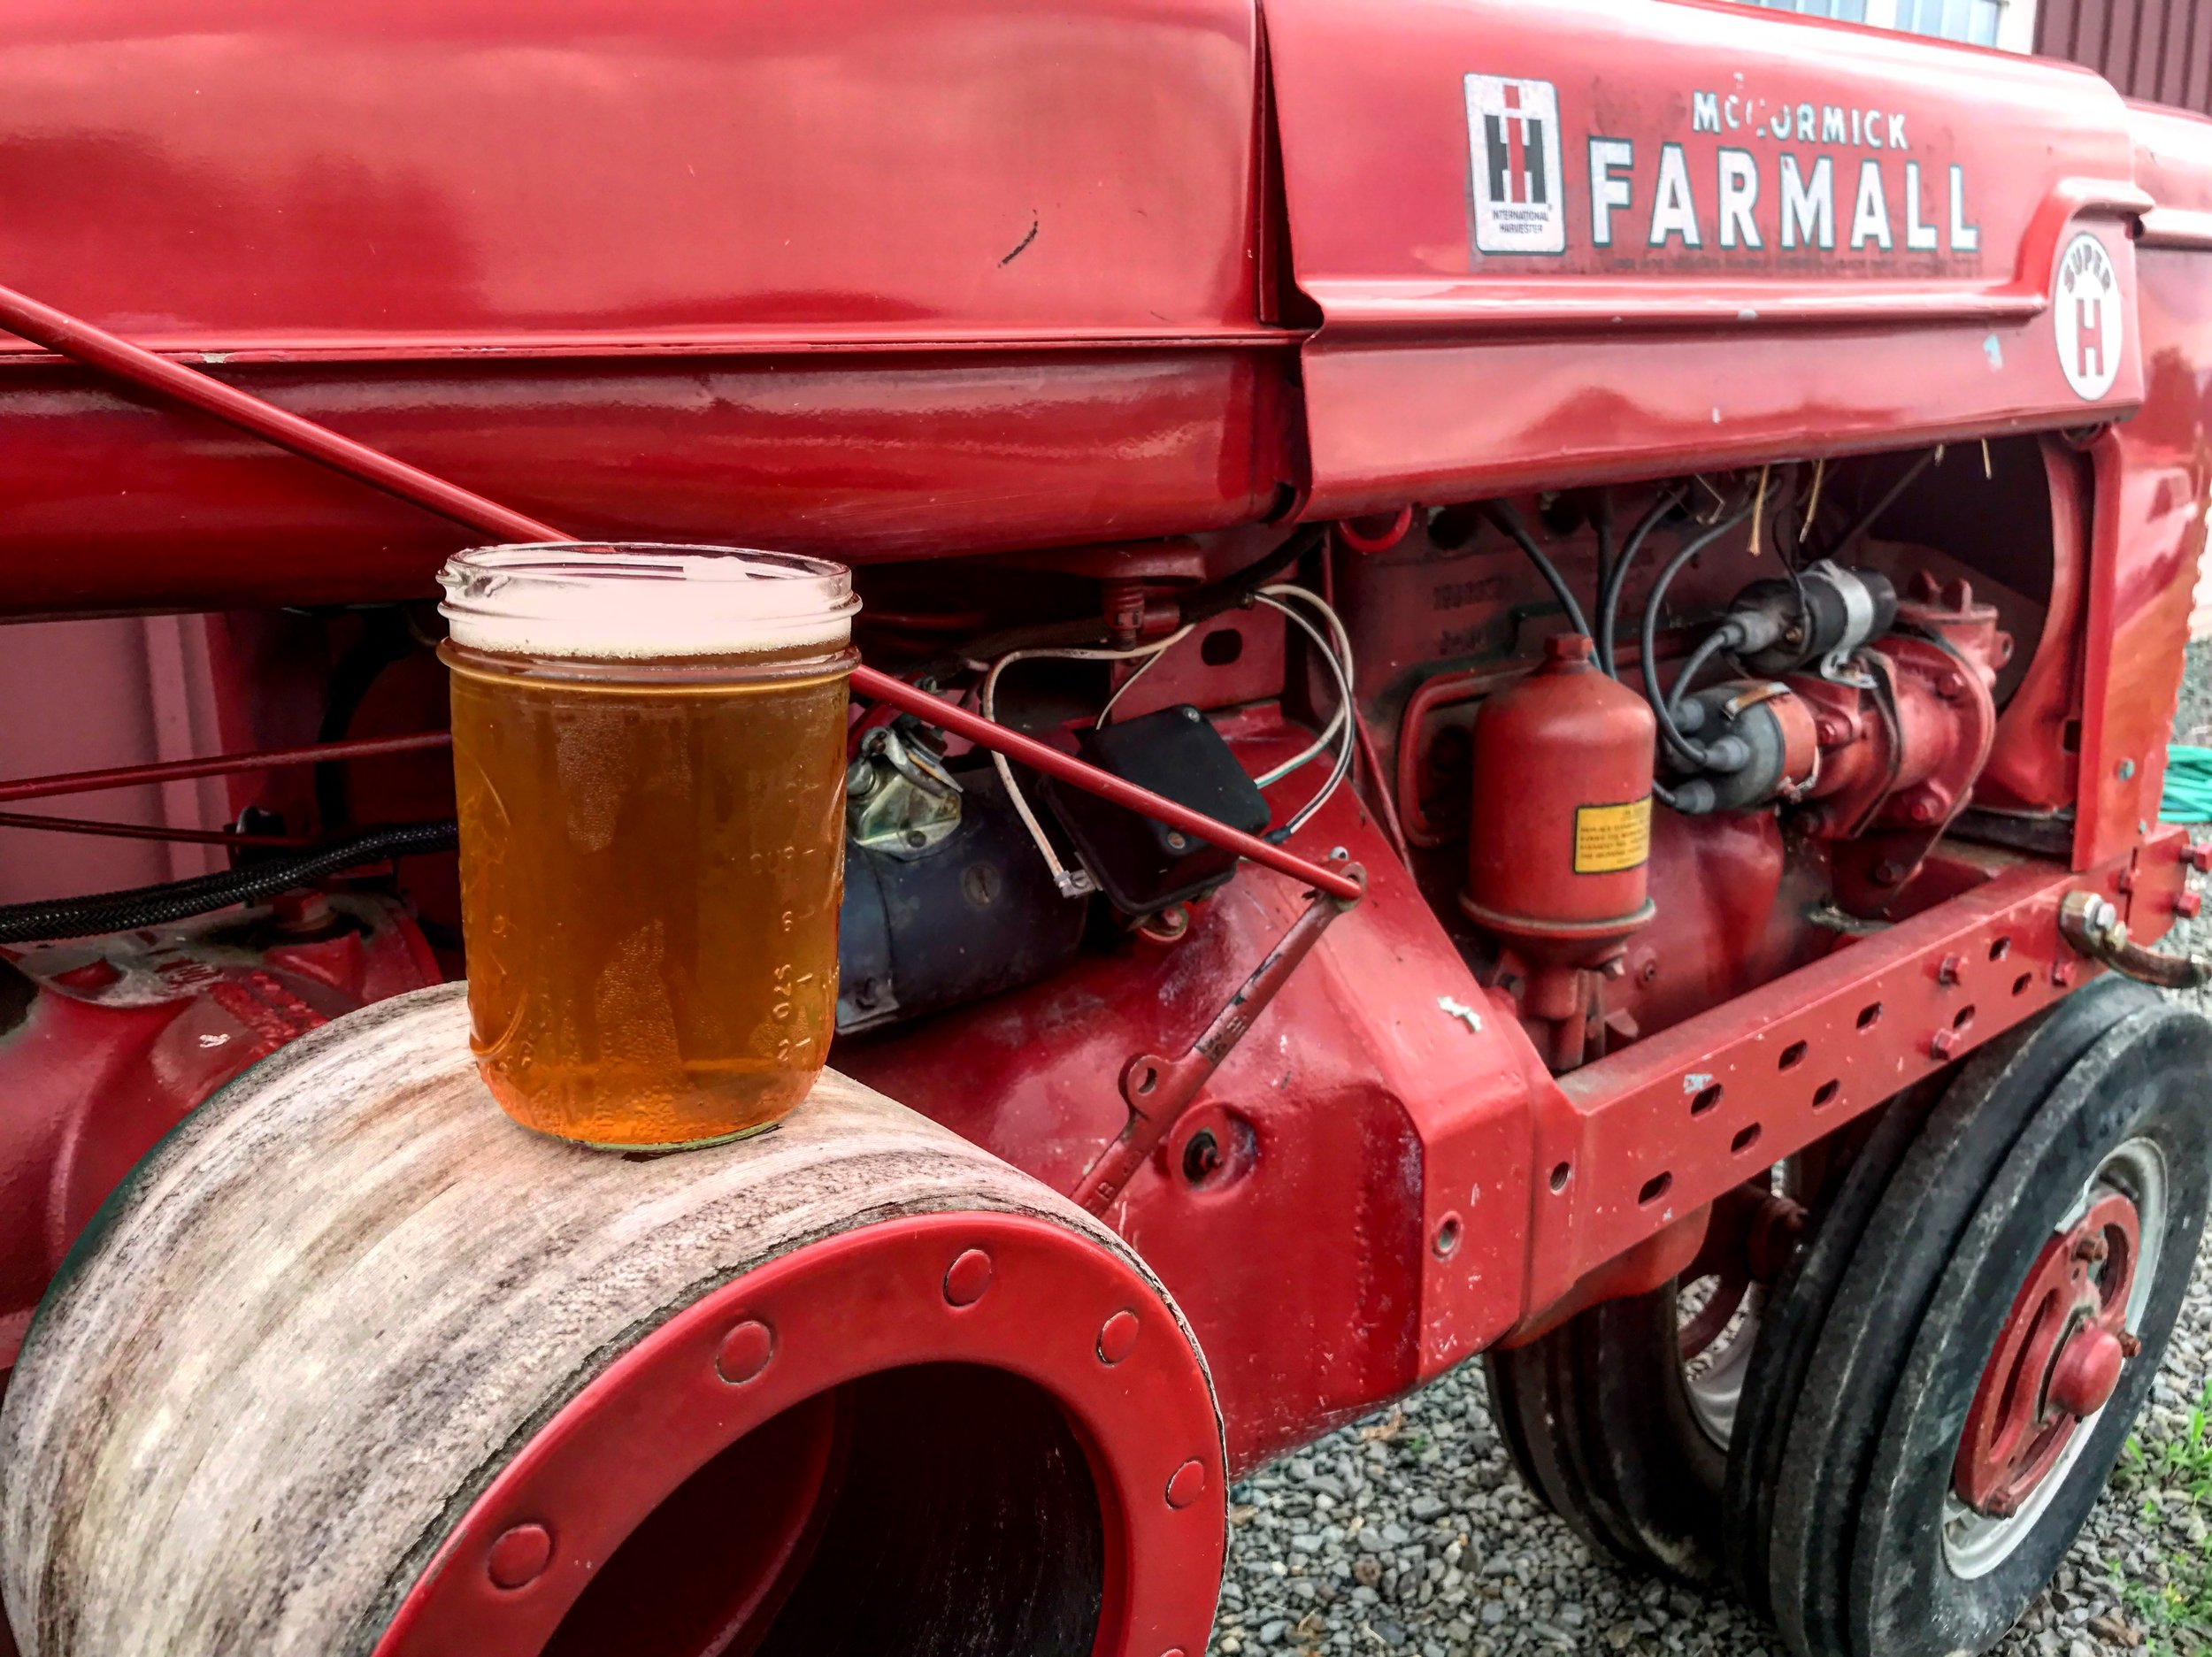 Picture of cider on red tractor